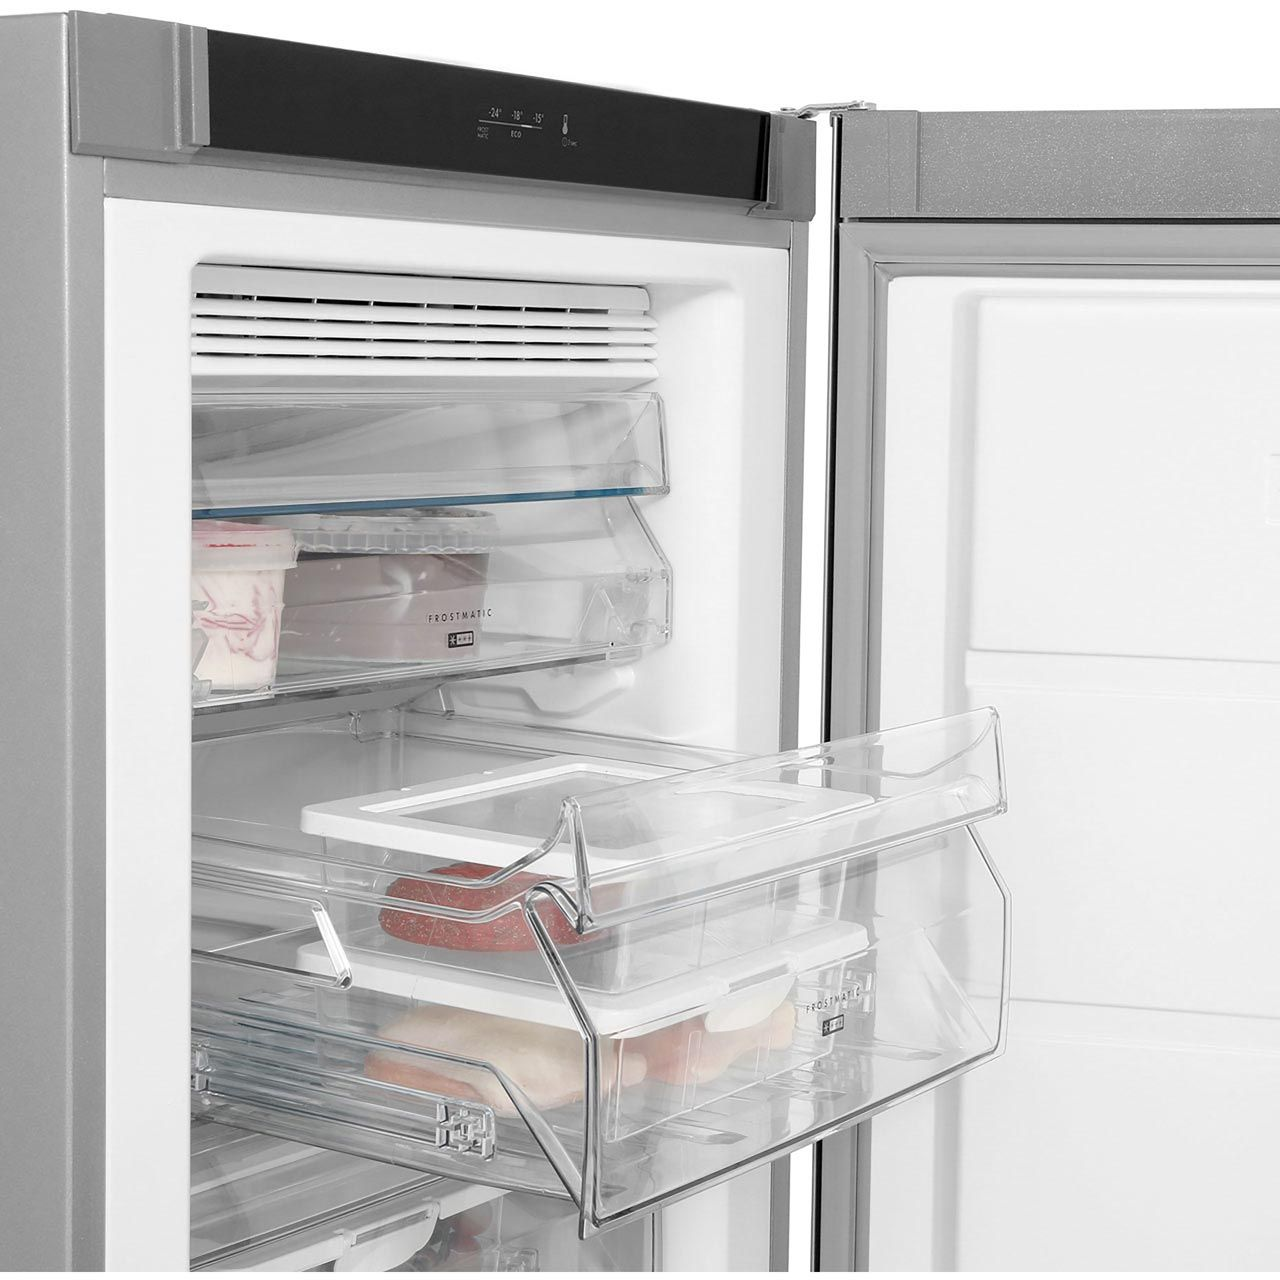 Aeg a72020gnx0 frost free upright freezer stainless